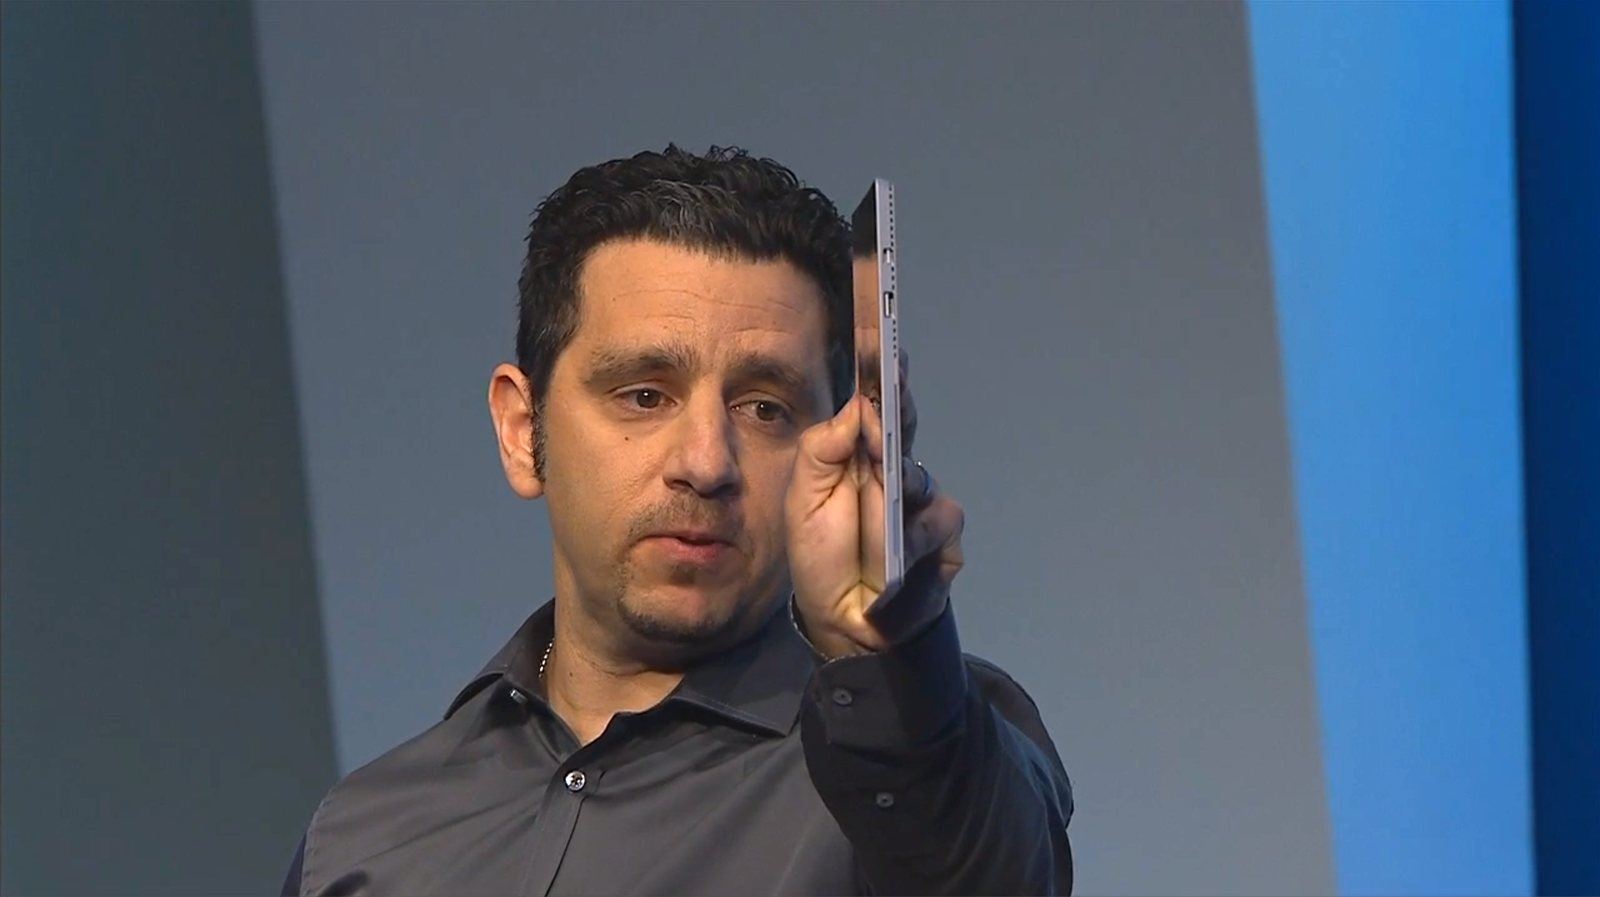 Panos Panay holds the device edge-on for the audience to see how thin it is.